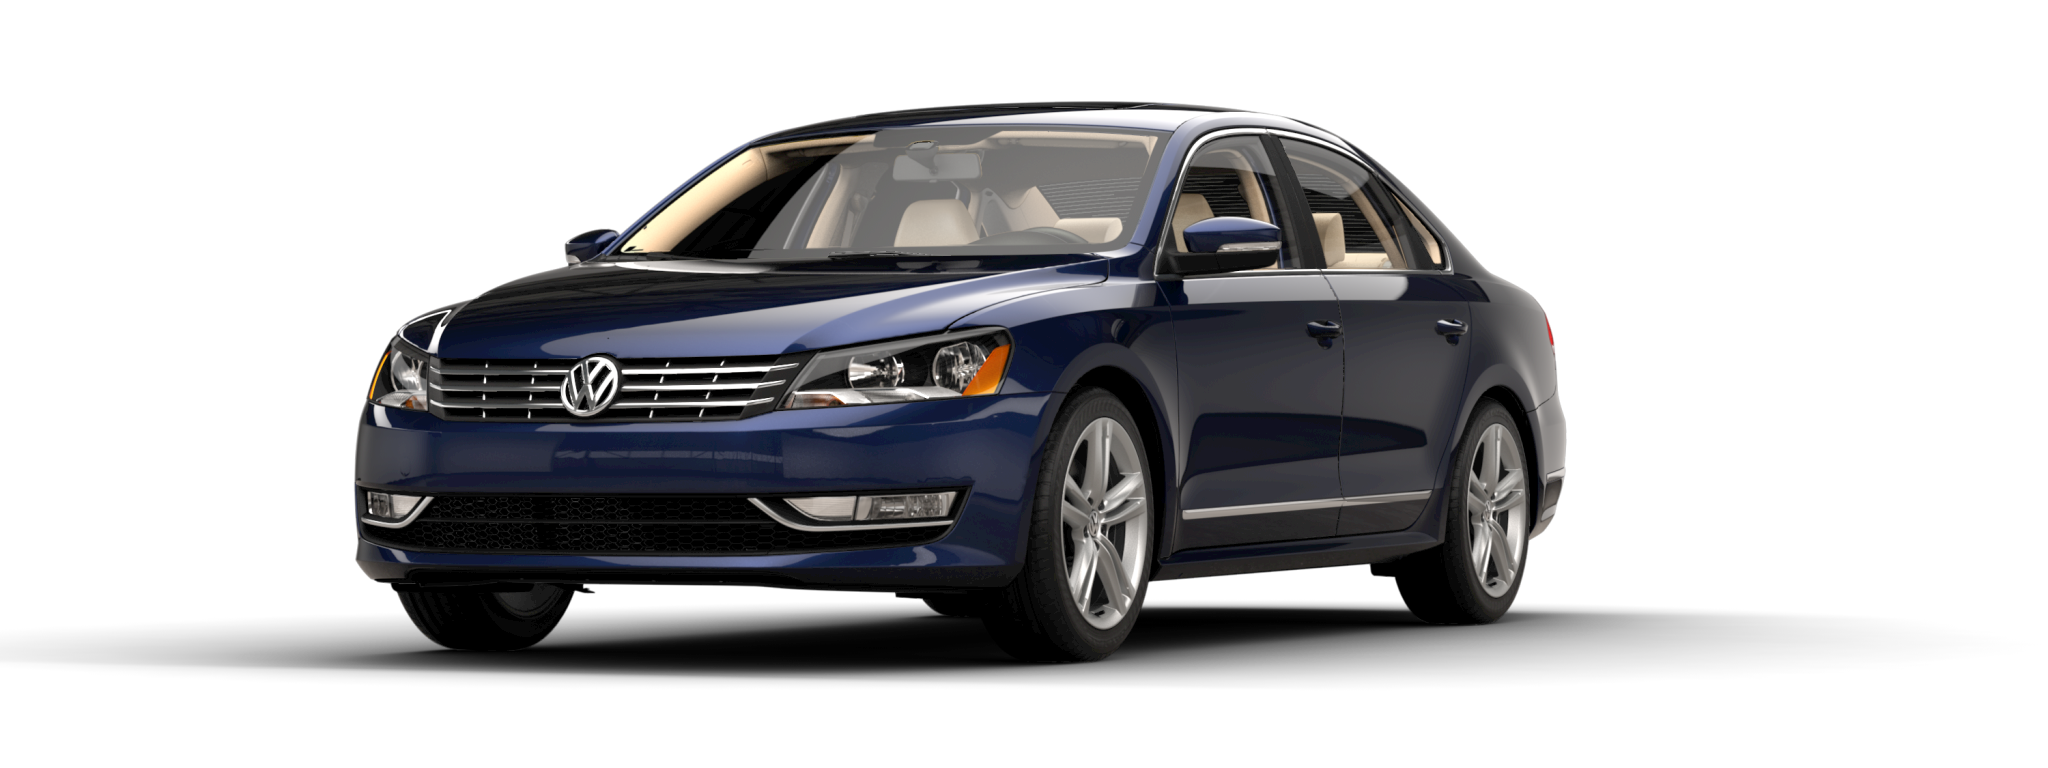 There s a vw out there for everyone i just found mine 2014 passat tdi clean diesel sel premium